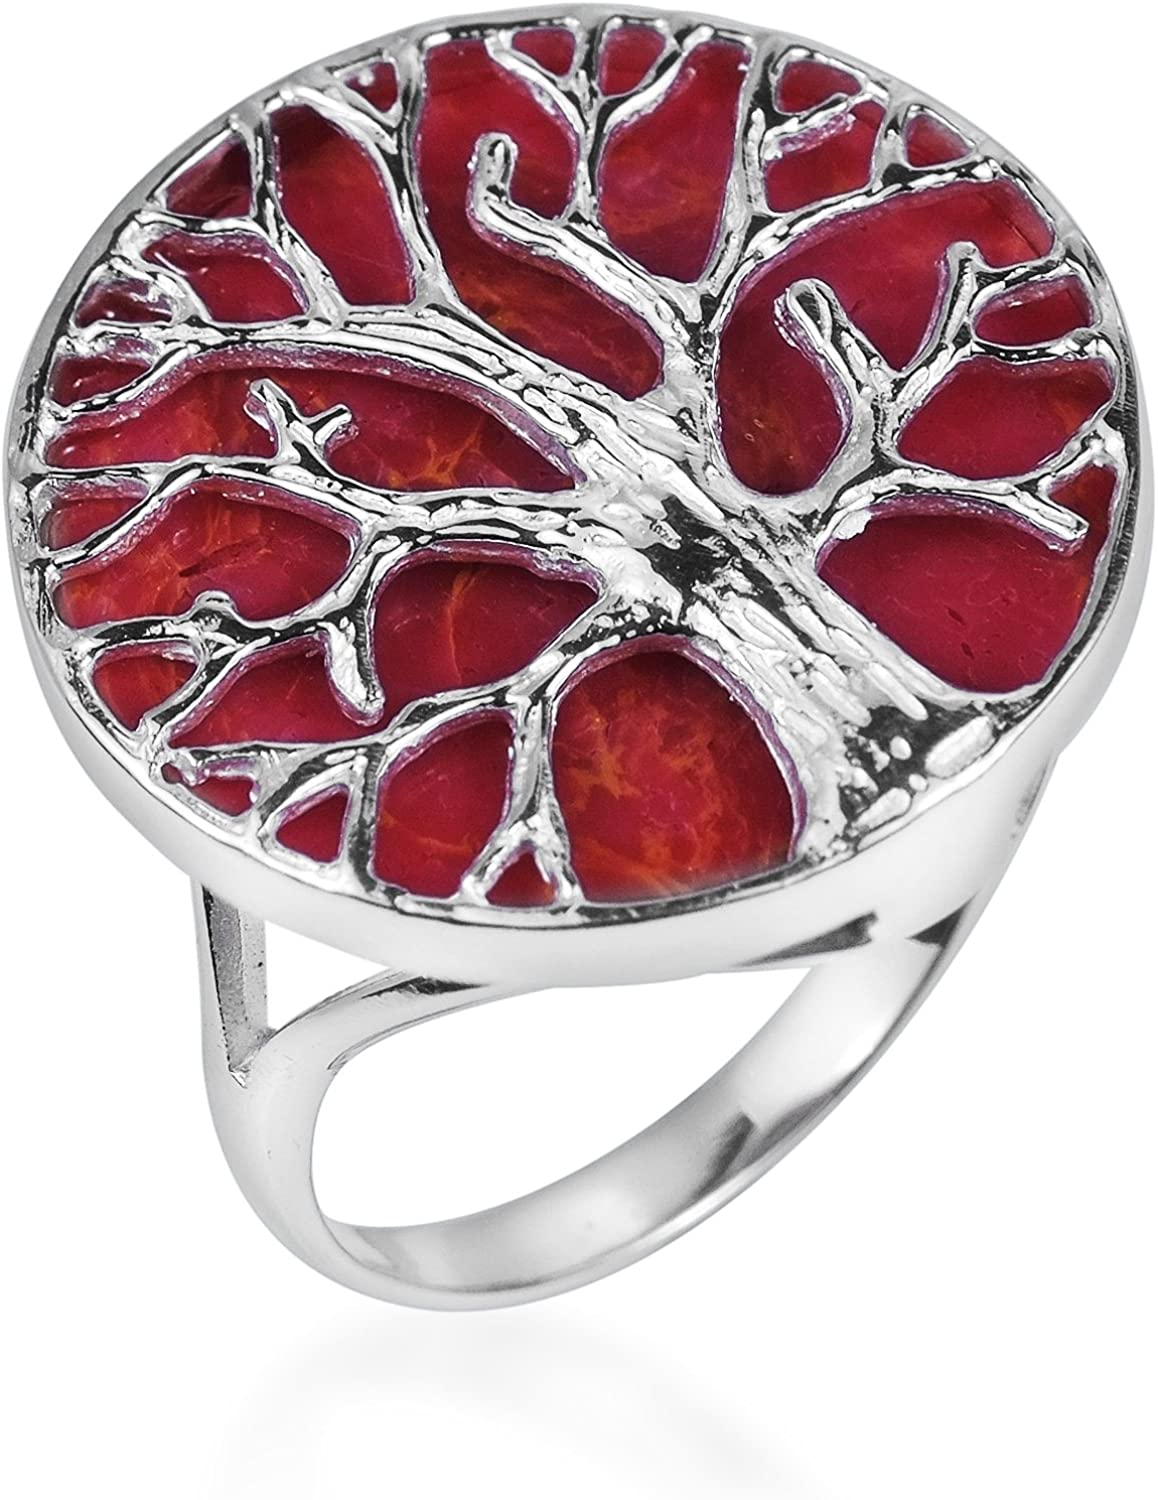 925 Sterling Silver Coral Inlay Marcasite Ring Size 5-9